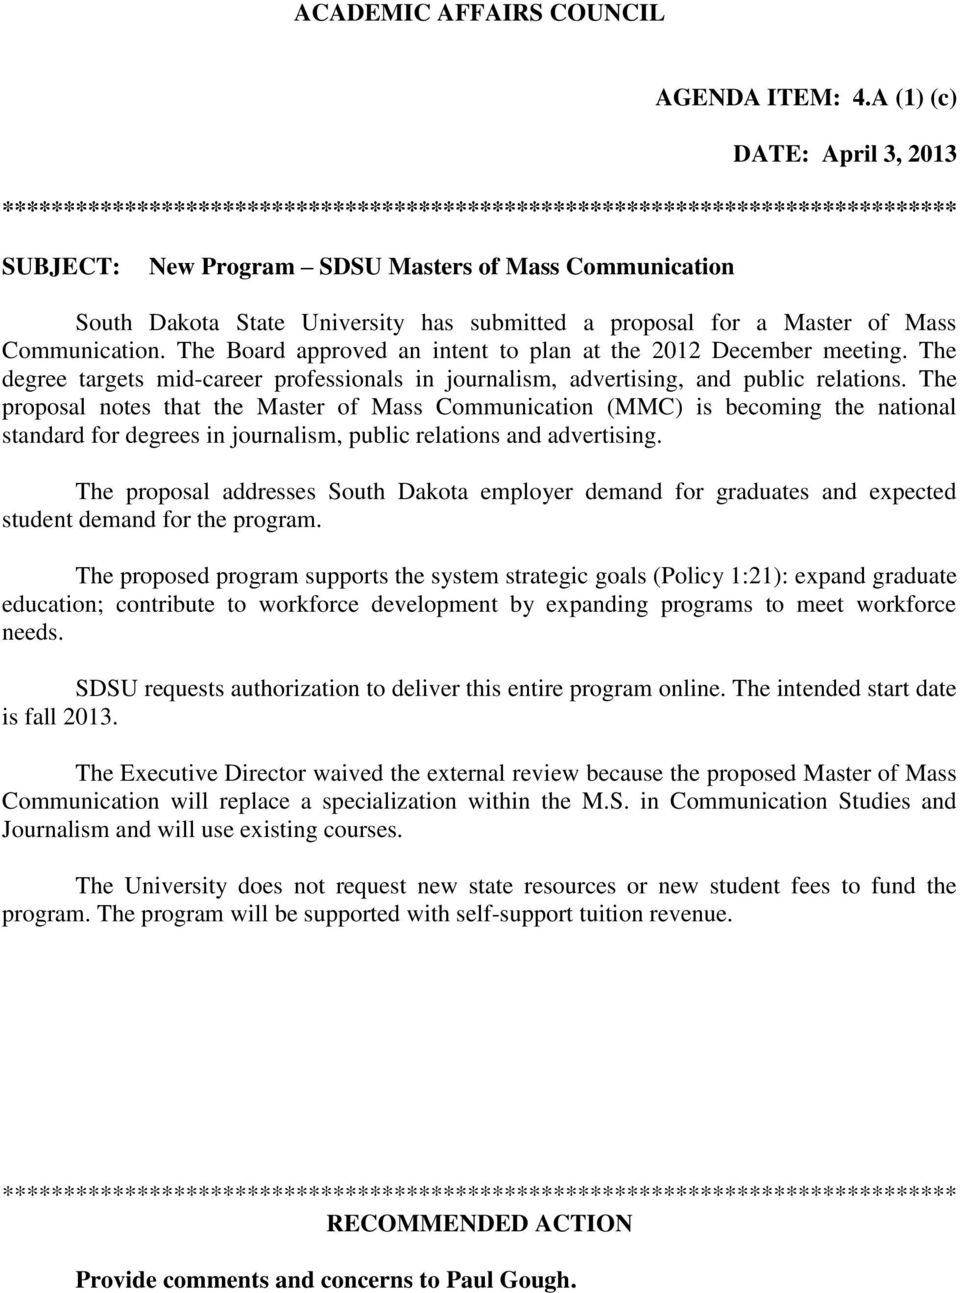 submitted a proposal for a Master of Mass Communication. The Board approved an intent to plan at the 2012 December meeting.